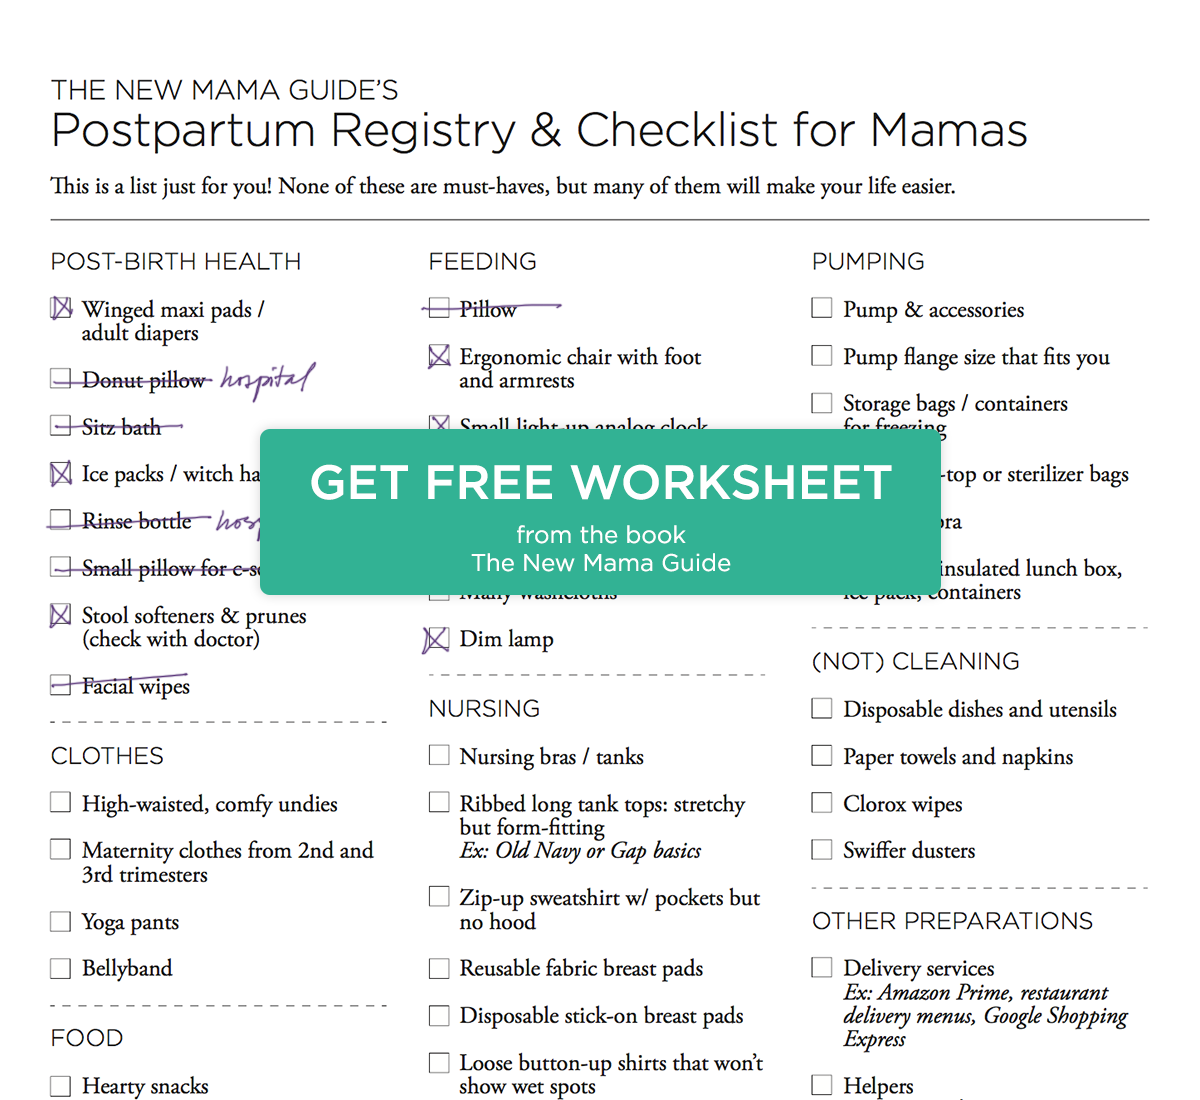 Postpartum Registry And Checklist Worksheet From The New